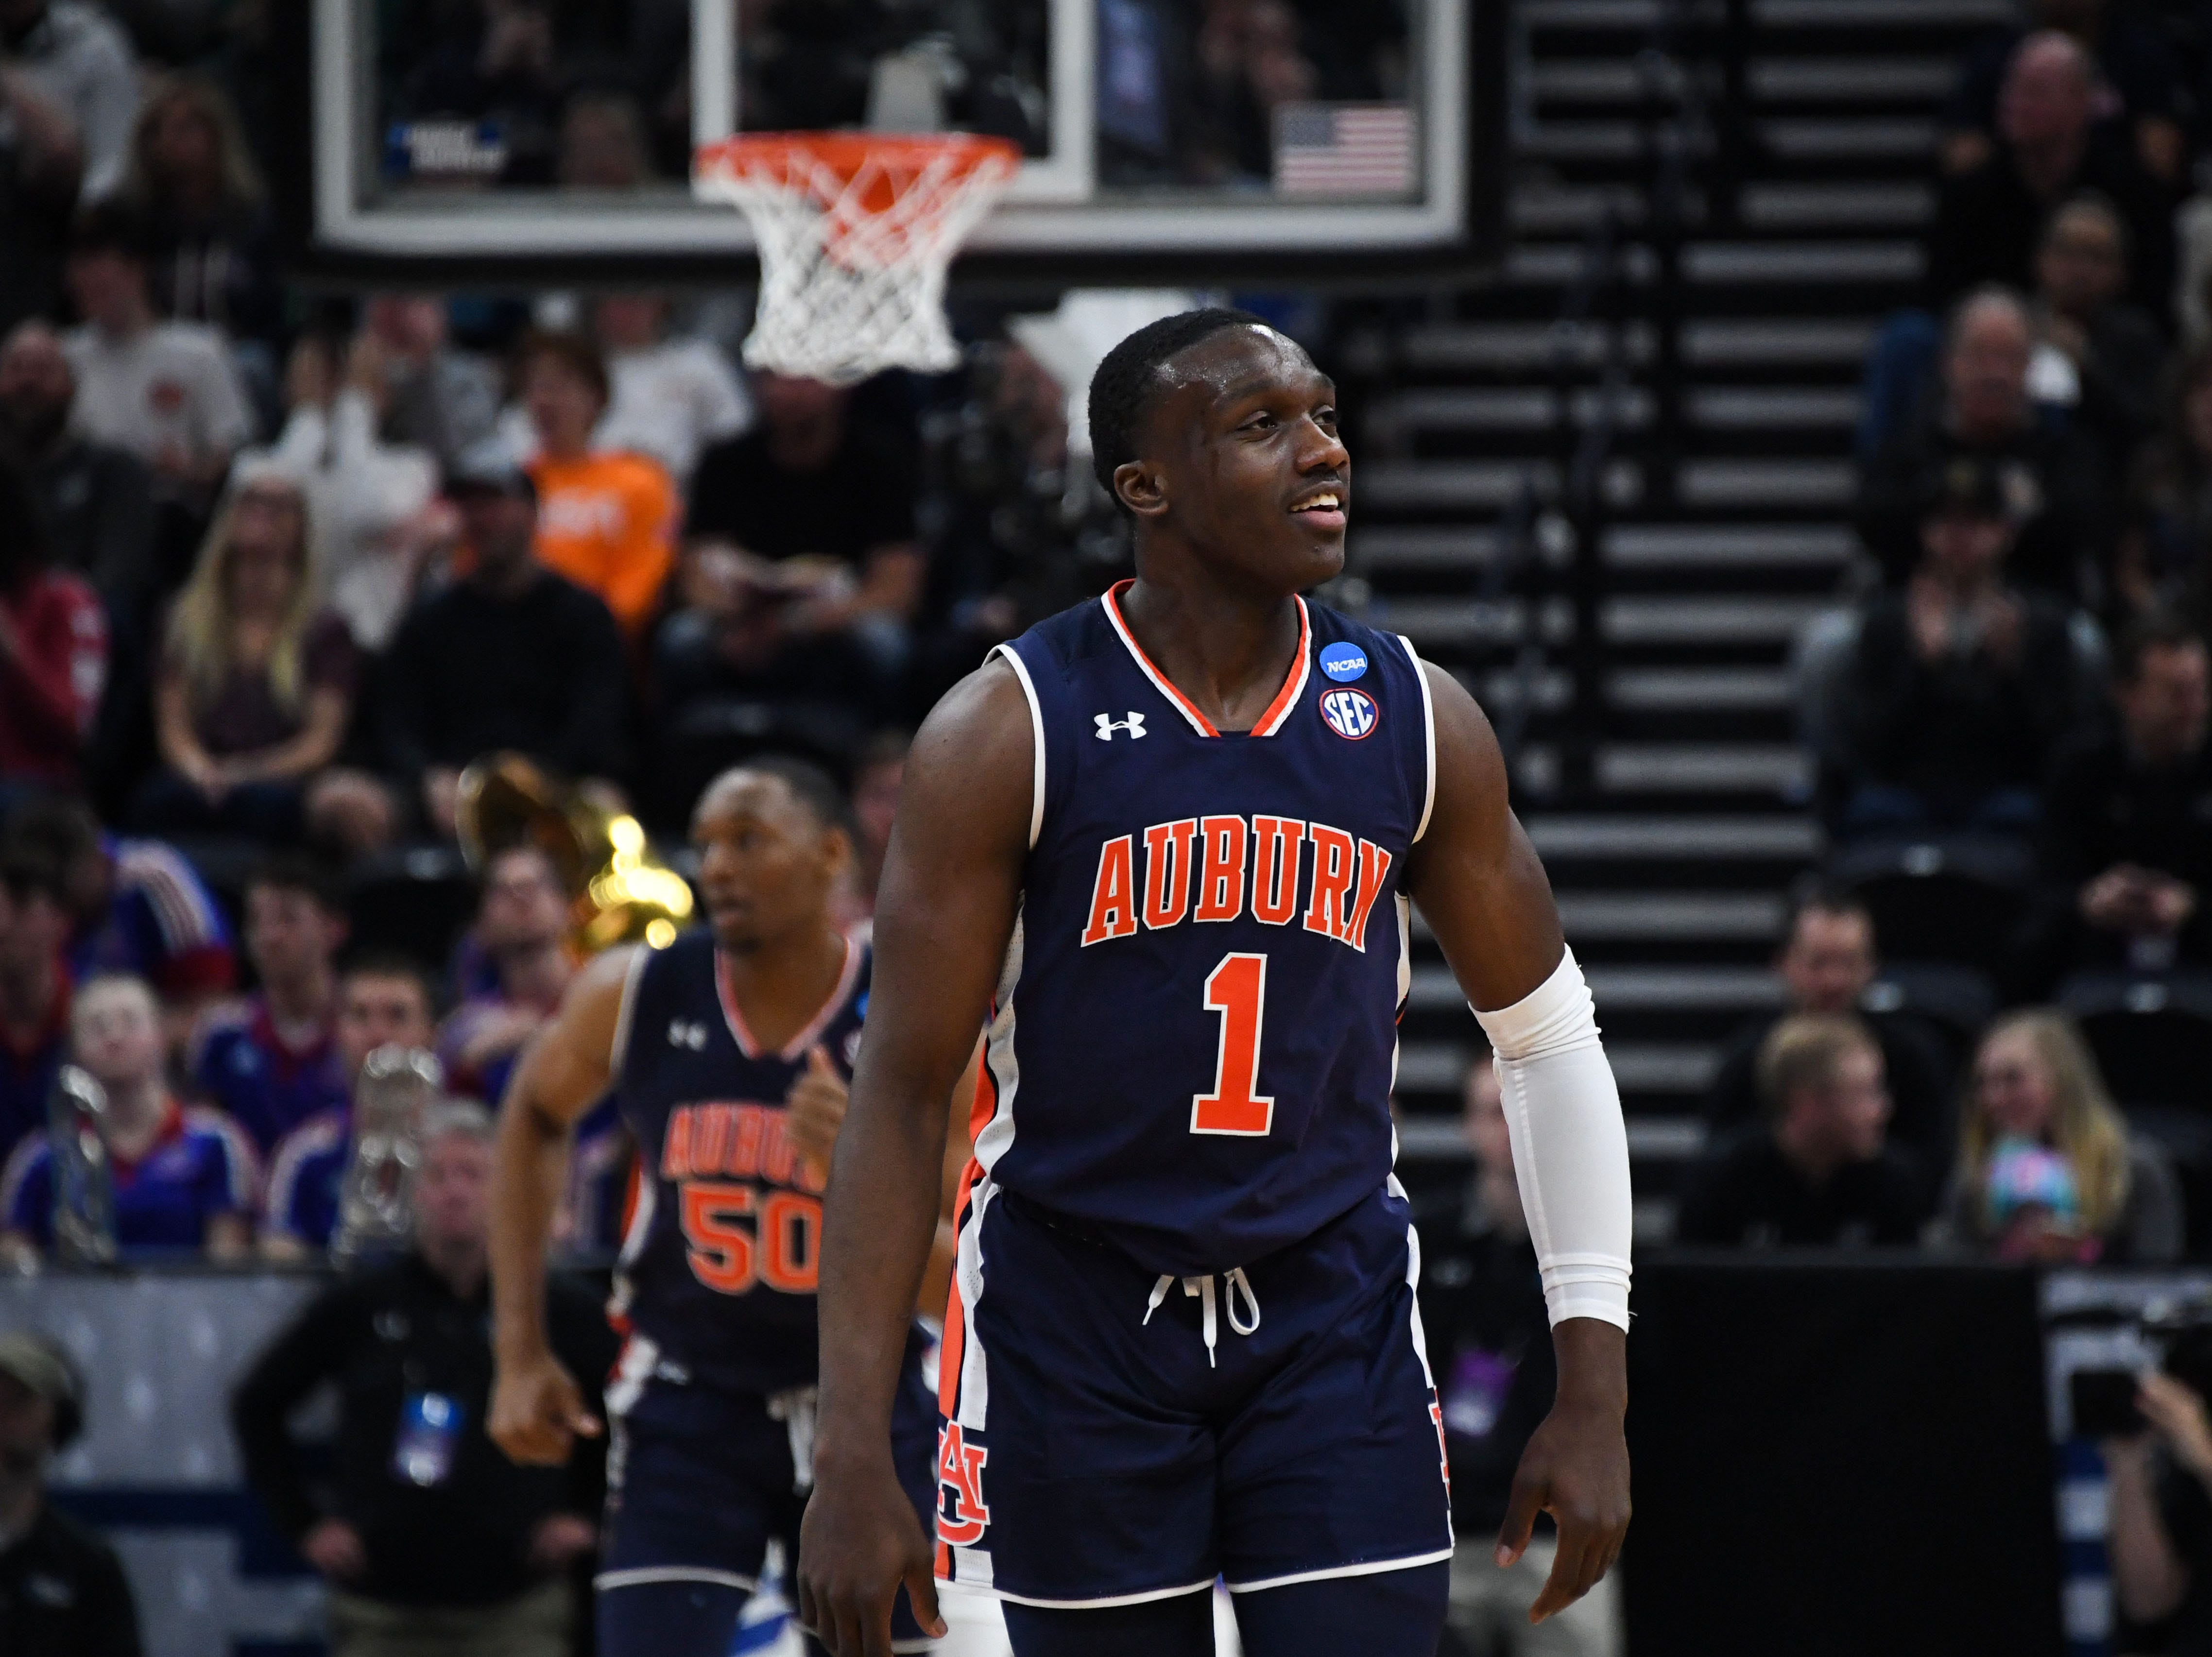 Mar 23, 2019; Salt Lake City, UT, USA; Auburn Tigers guard Jared Harper (1) reacts during the first half in the second round of the 2019 NCAA Tournament against the Kansas Jayhawks at Vivint Smart Home Arena. Mandatory Credit: Kirby Lee-USA TODAY Sports